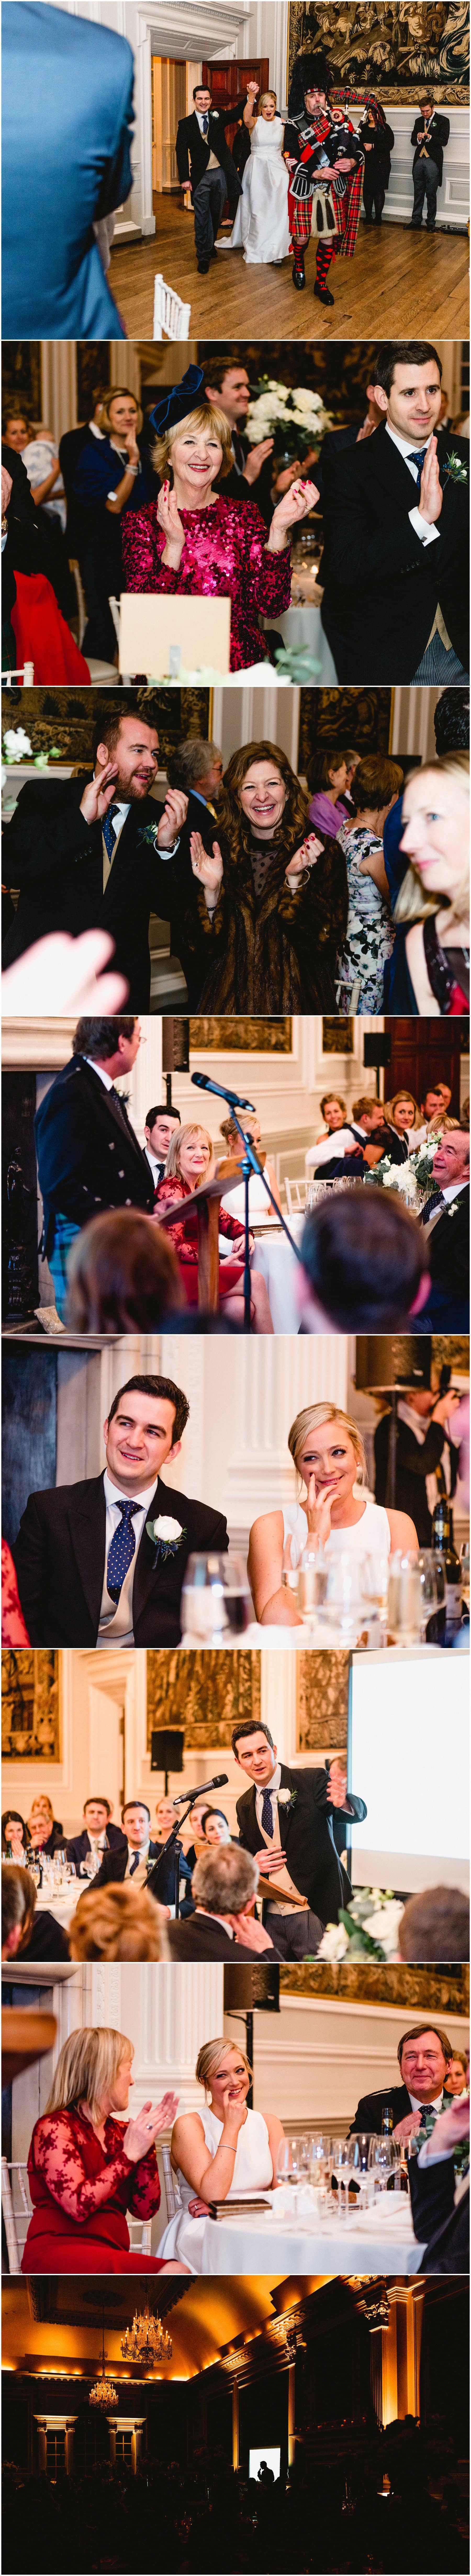 Speeches photos at Hopetoun House during winter wedding, bride and groom laughing